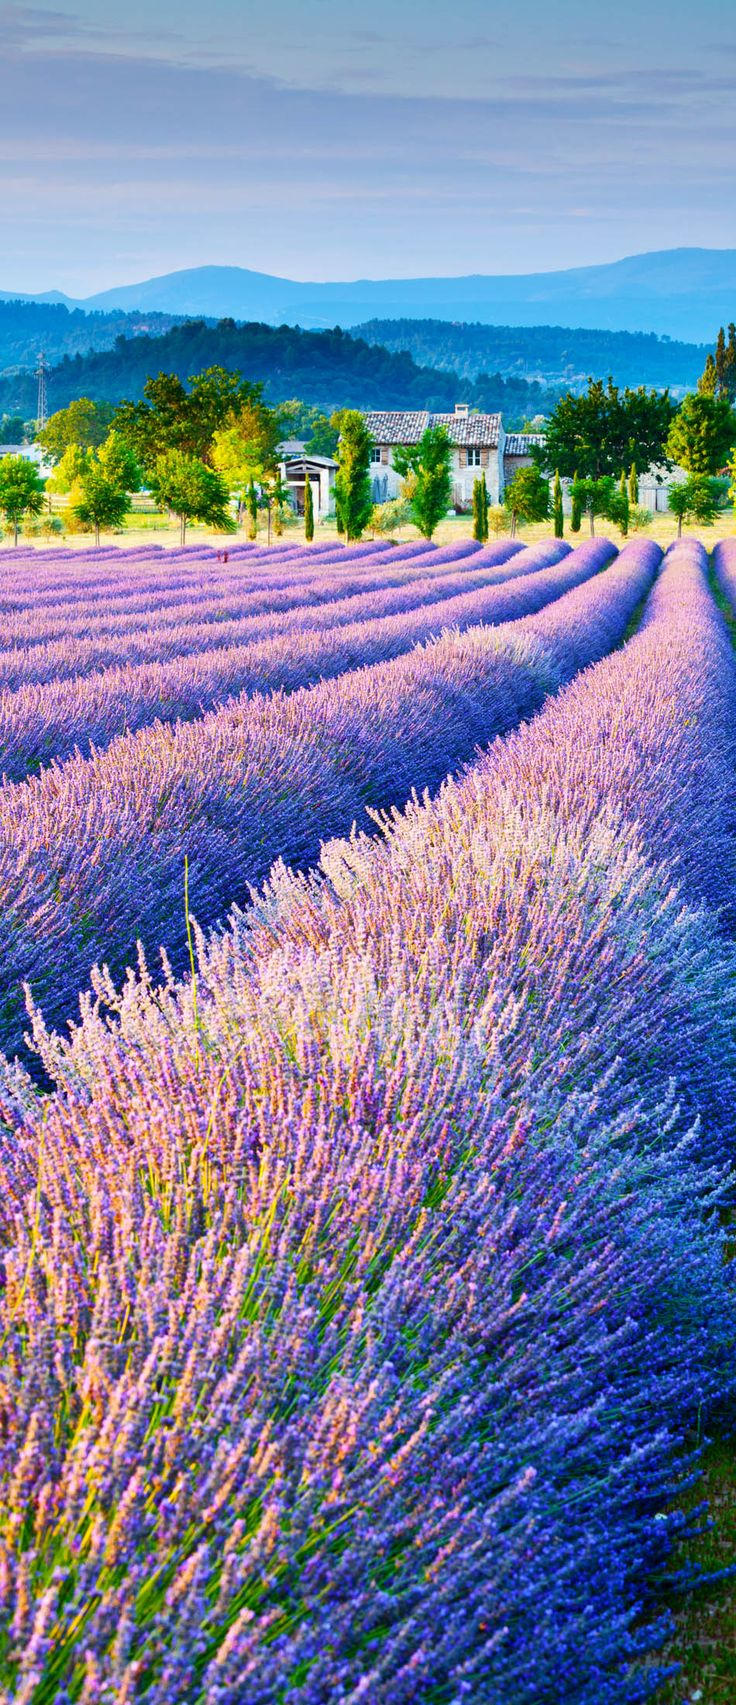 The fragrant lavender fields bloom from June to August in the Luberon, around the Mont-Ventoux, in the region of Sault and that of Valreas,Provence, France. Photo: amongraf.ro/photos/lavenderfrance